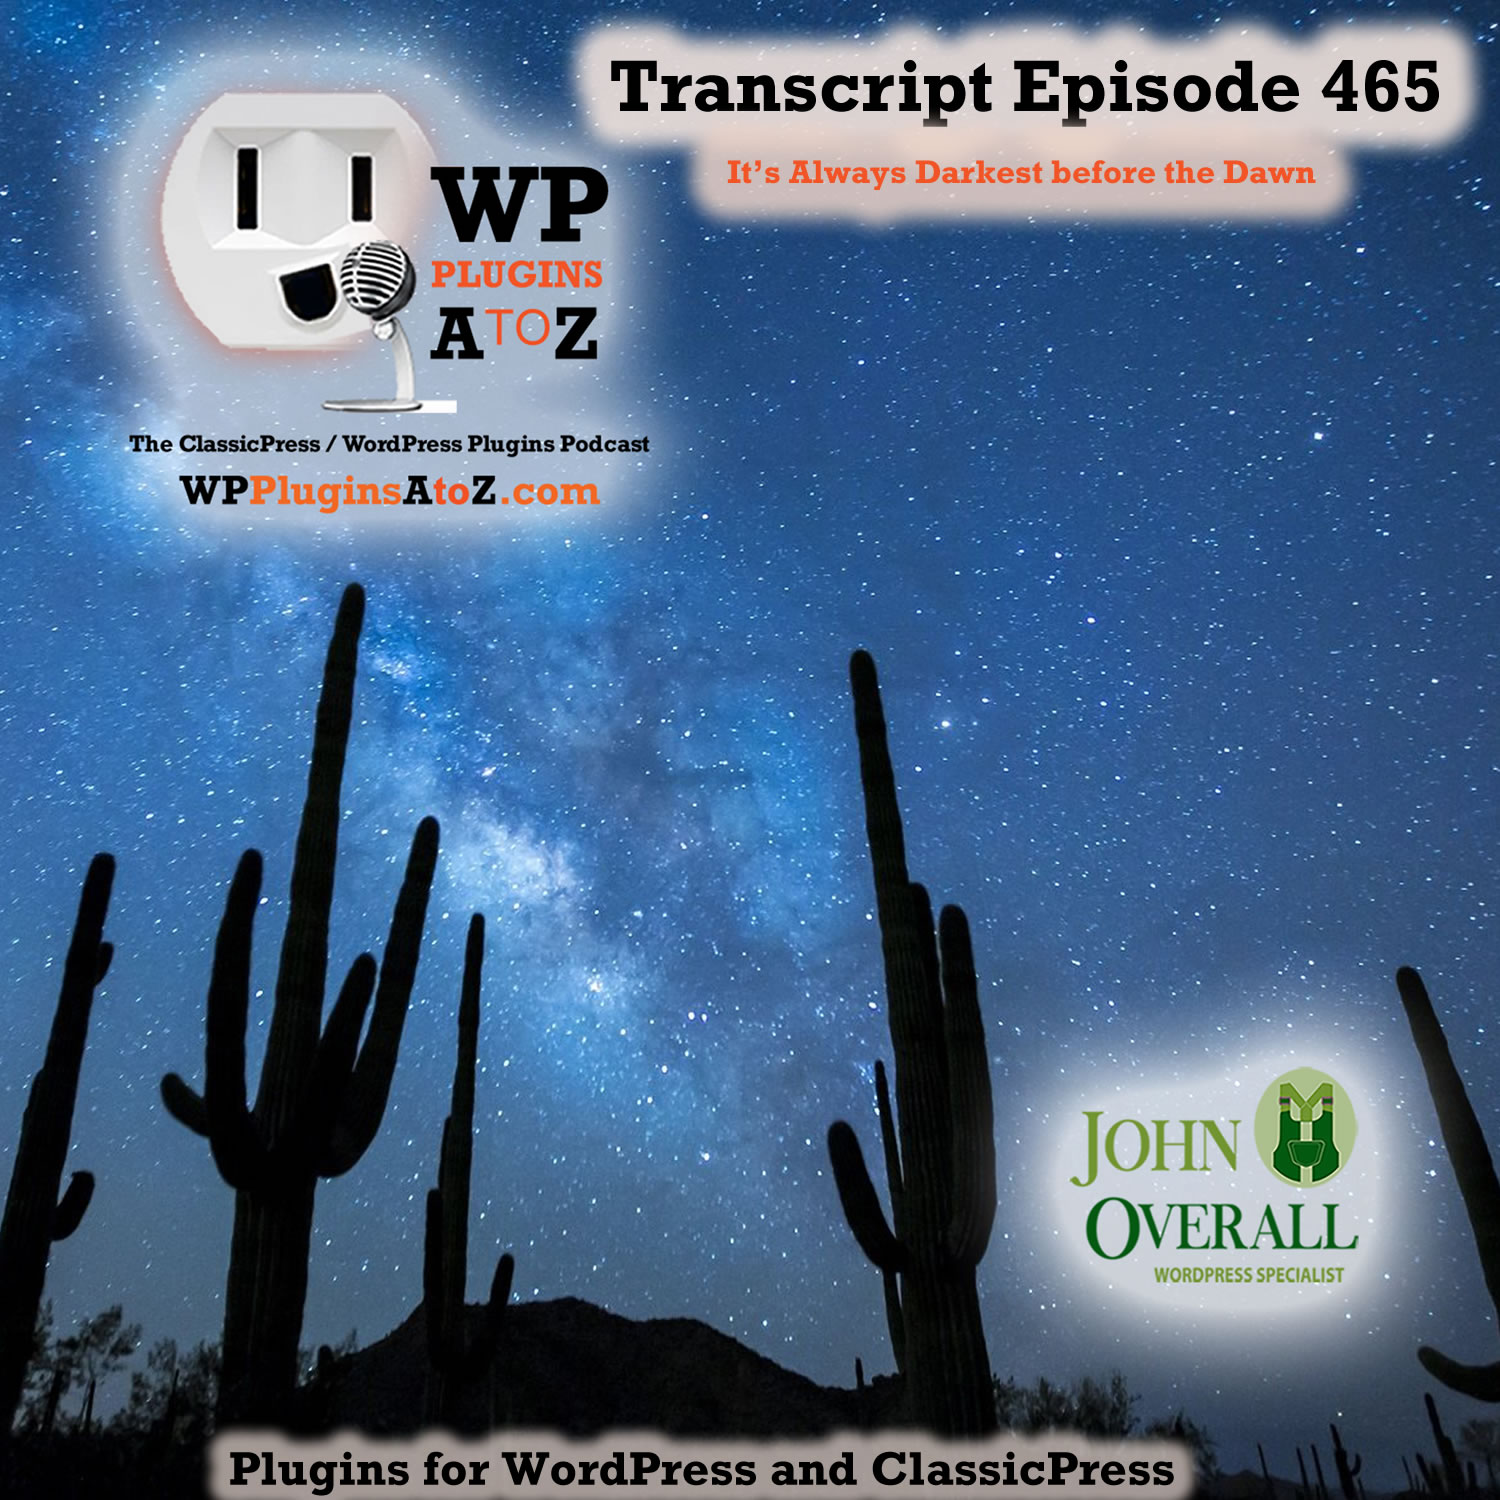 It's Always Darkest before the Dawn It's Episode 465 with plugins for Quality Cooking, a Backdoor Pass, Tax Collecting, and ClassicPress Options. It's all coming up on WordPress Plugins A-Z!